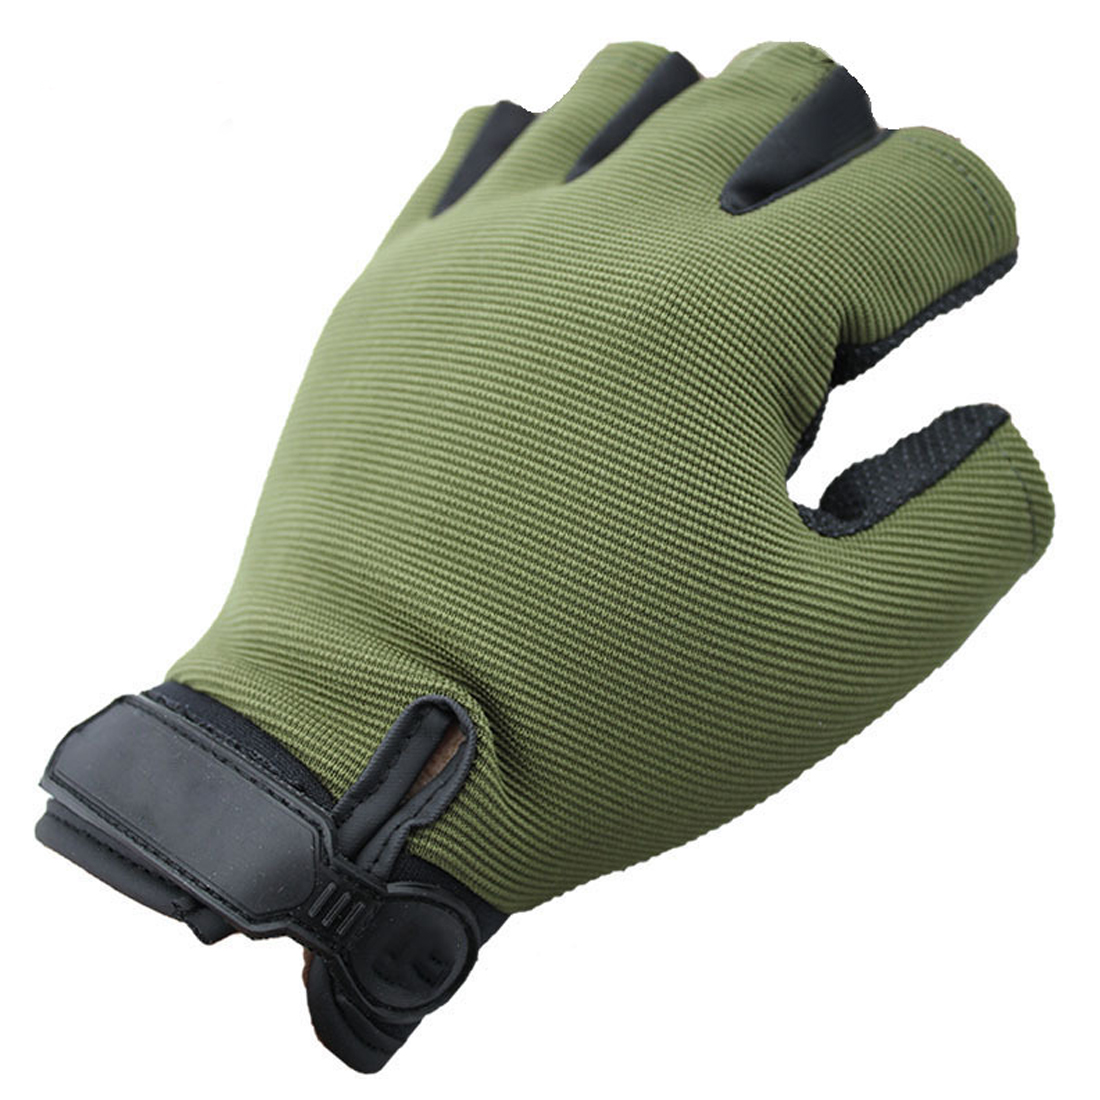 1 Pair Fishing Half Finger Gloves Short Nylon Breathable Gloves Protects Your Hands Pecas Helper Army Green XL Hot Slae